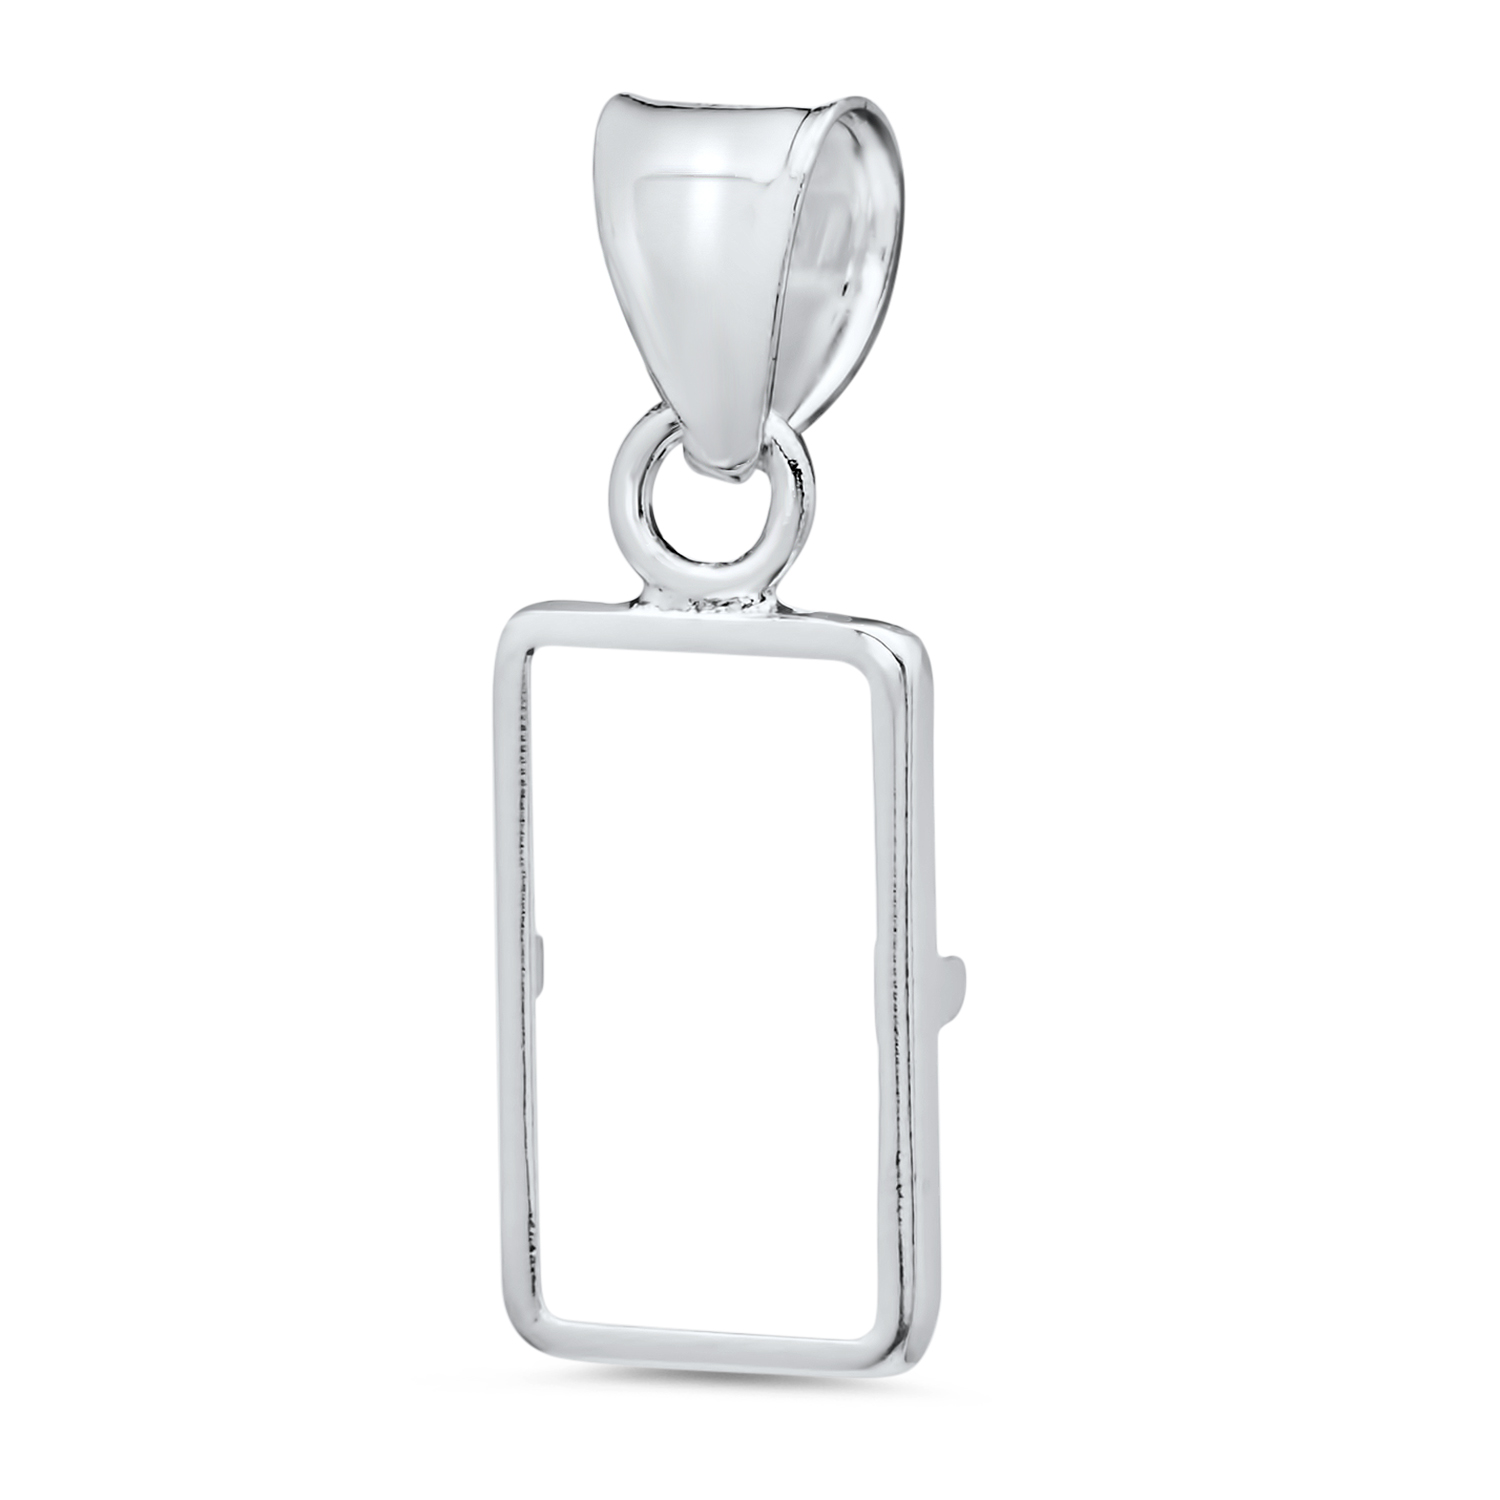 Sterling Silver Prong Back Bezels (Fits 1 Gram Bars)